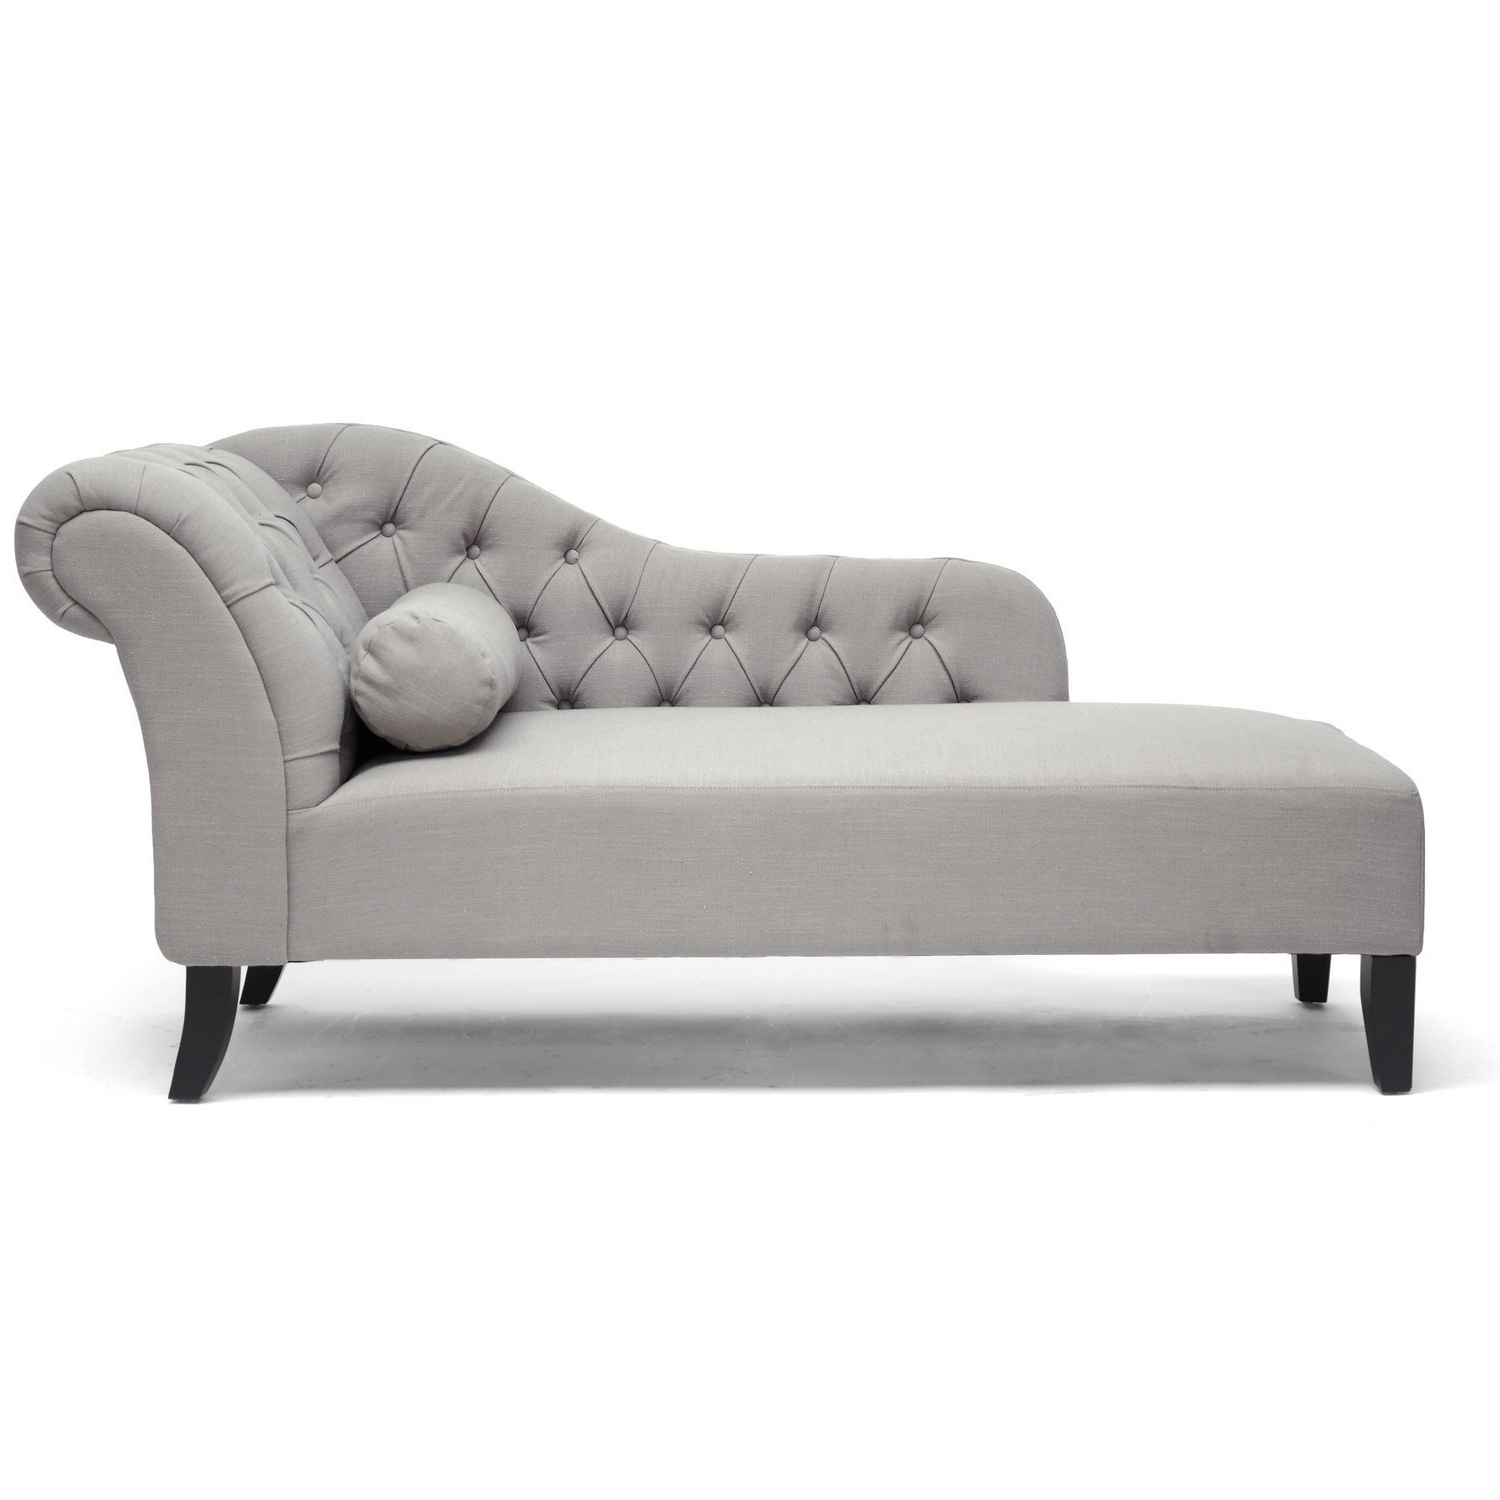 Well Known Linen Chaise Lounges Throughout Amazon: Baxton Studio Aphrodite Tufted Putty Linen Modern (View 14 of 15)